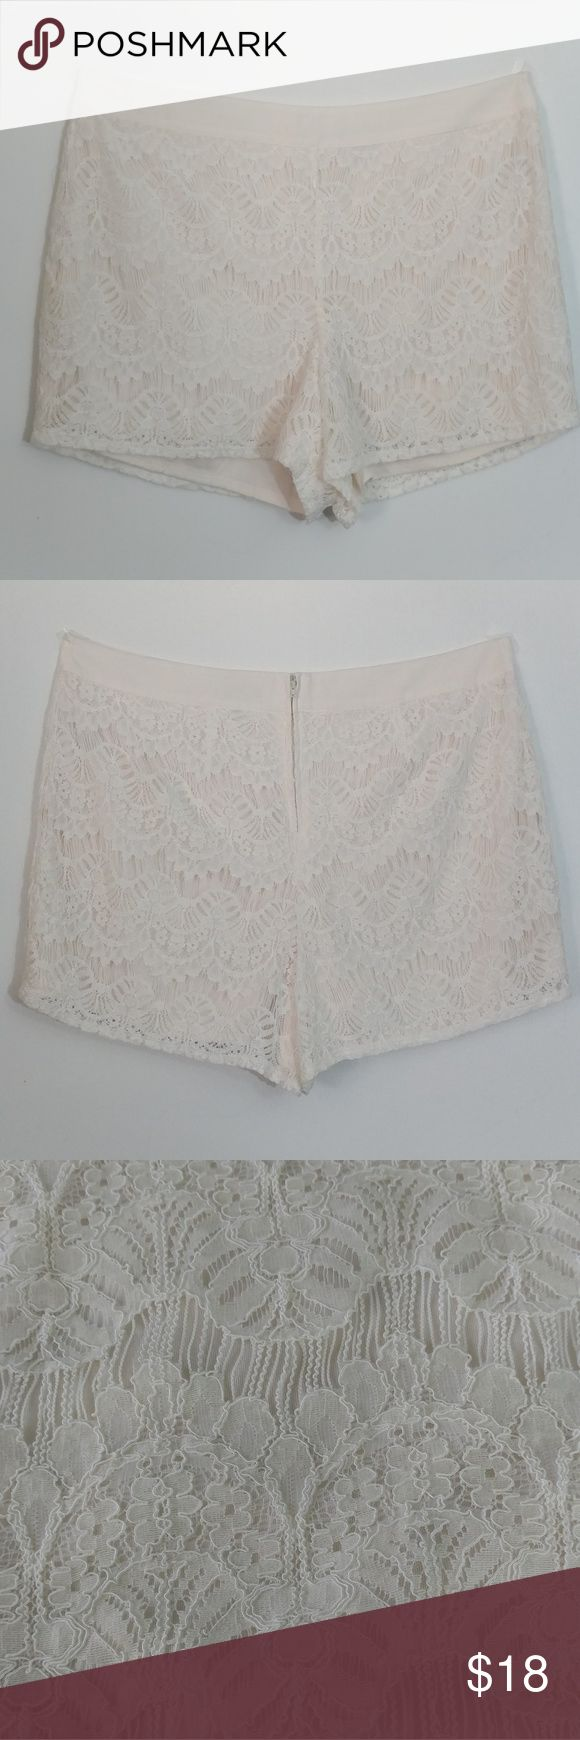 Forever 21 + (Cream Lace Shorts) Forever 21 plus Lace Cream shorts. Size 1X. New without tags but have not been worn. They are too short for my comfort but deserve to see the outside world being so beautiful.  Waist is 20in with no stretch Length 16in    Reasonable OFFERS welcome  No Trades Forever 21 Shorts